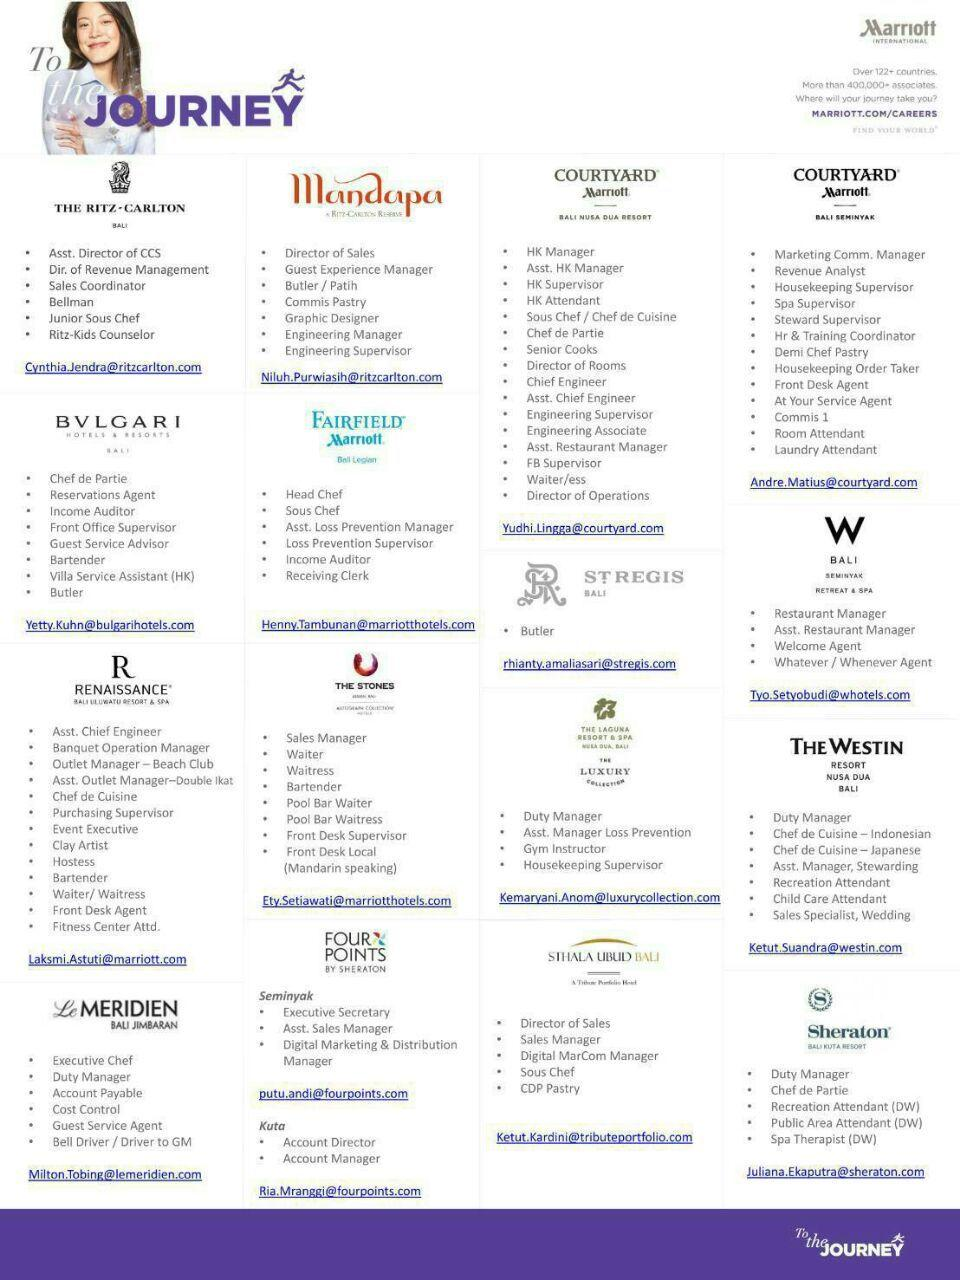 Capella Hotel Group All Positions Hotelier Indonesia Jobs